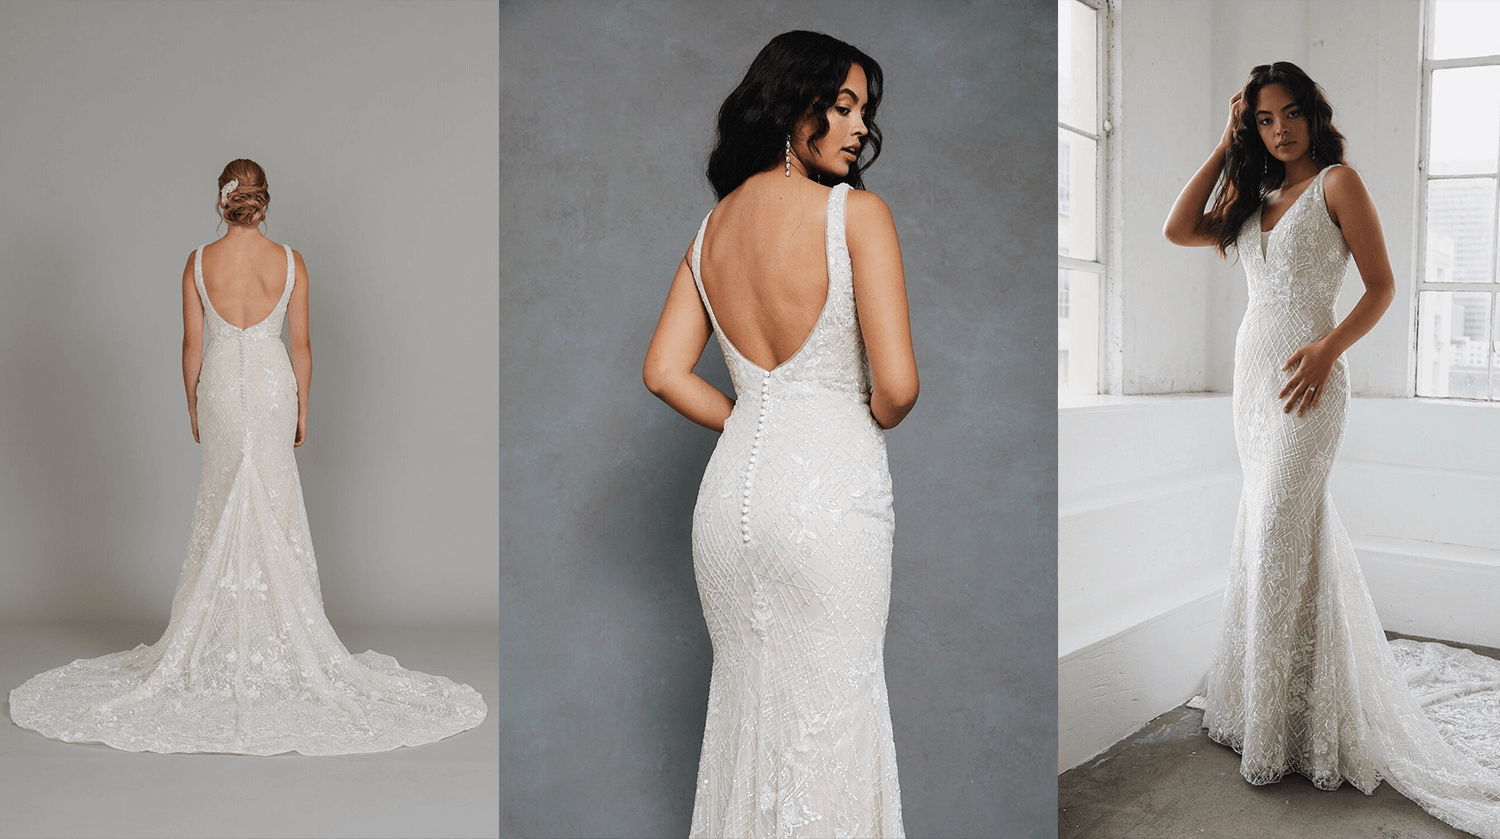 A sleek, body-hugging wedding gown by Lis Simon